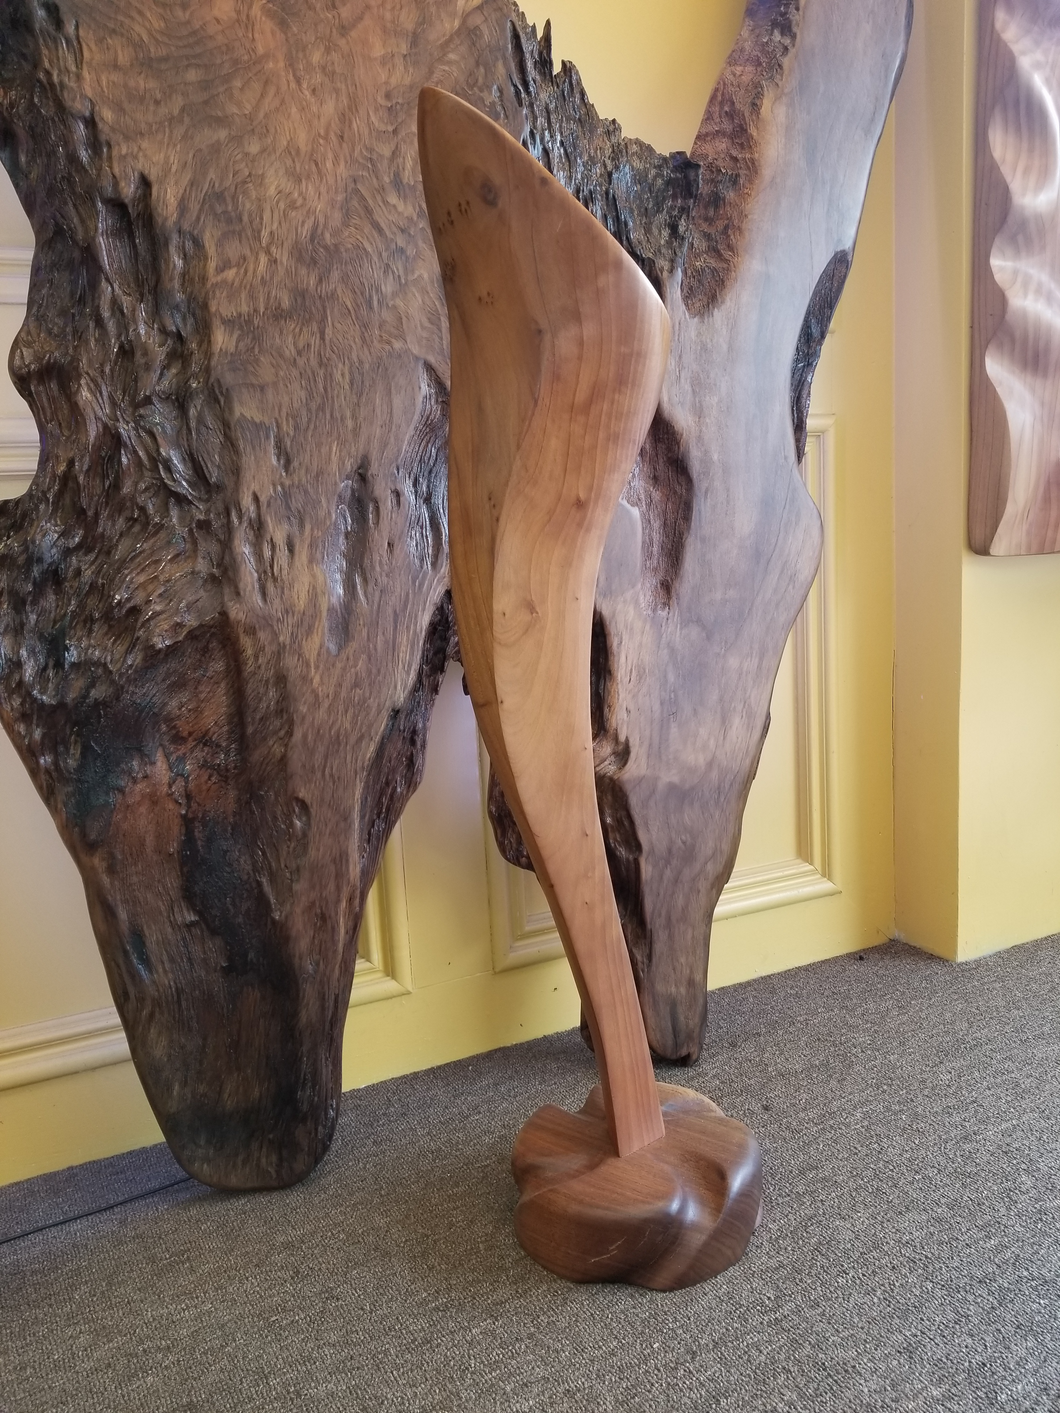 Redwood Sculpture